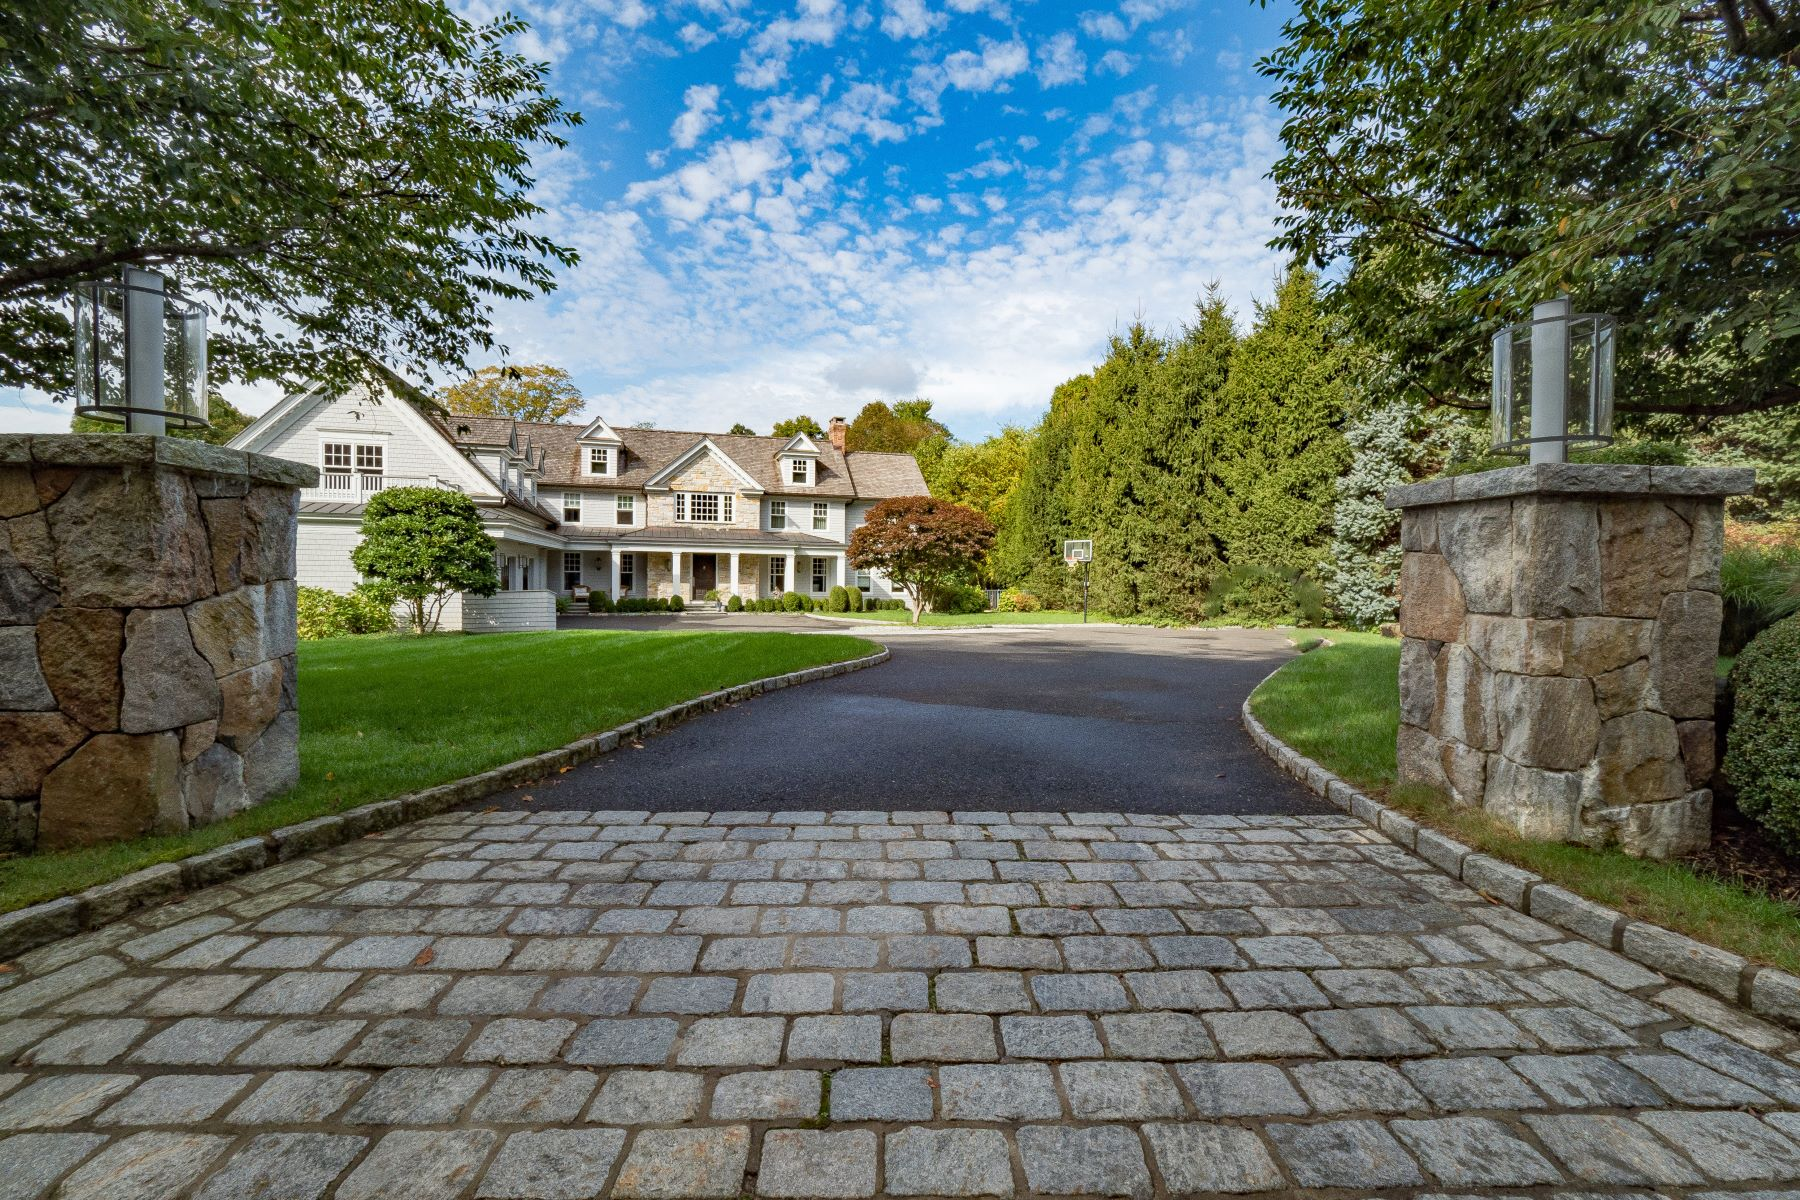 Single Family Home for Sale at Incomparable Westport Estate 4 & 6 Cob Drive, Westport, Connecticut, 06880 United States